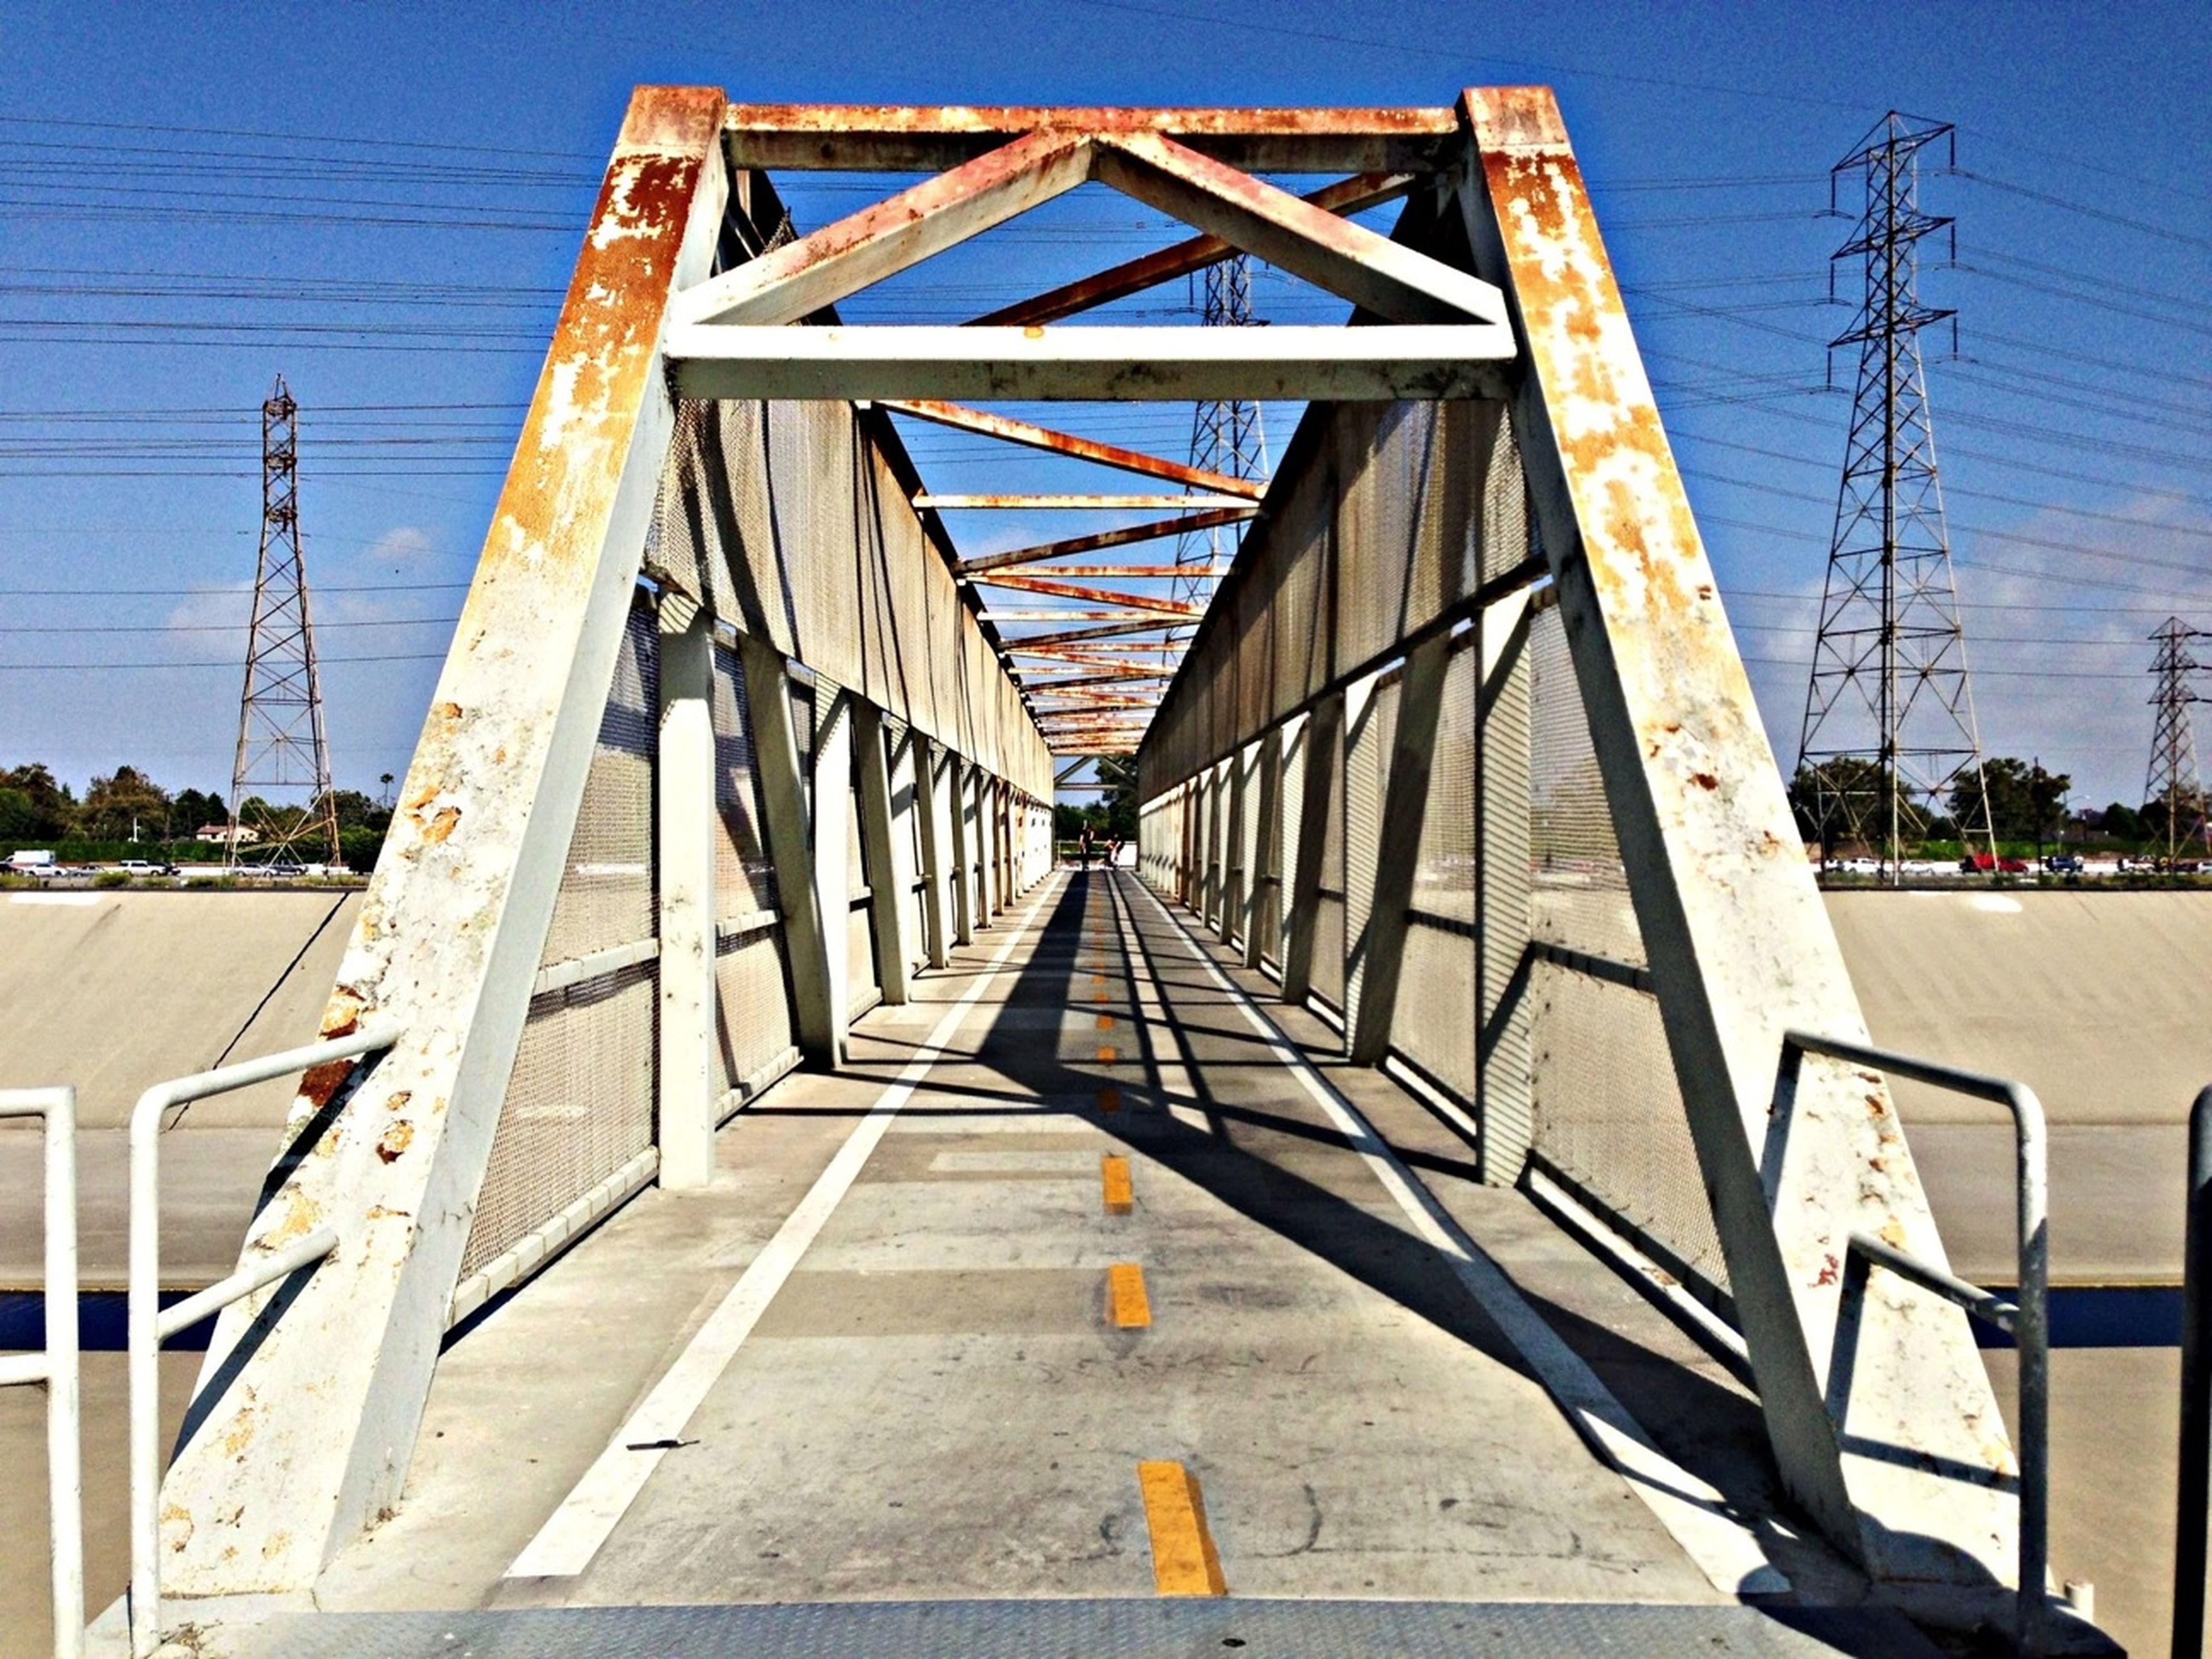 connection, the way forward, built structure, architecture, diminishing perspective, bridge - man made structure, transportation, long, railing, vanishing point, sky, bridge, narrow, cable, footbridge, engineering, electricity pylon, outdoors, power line, no people